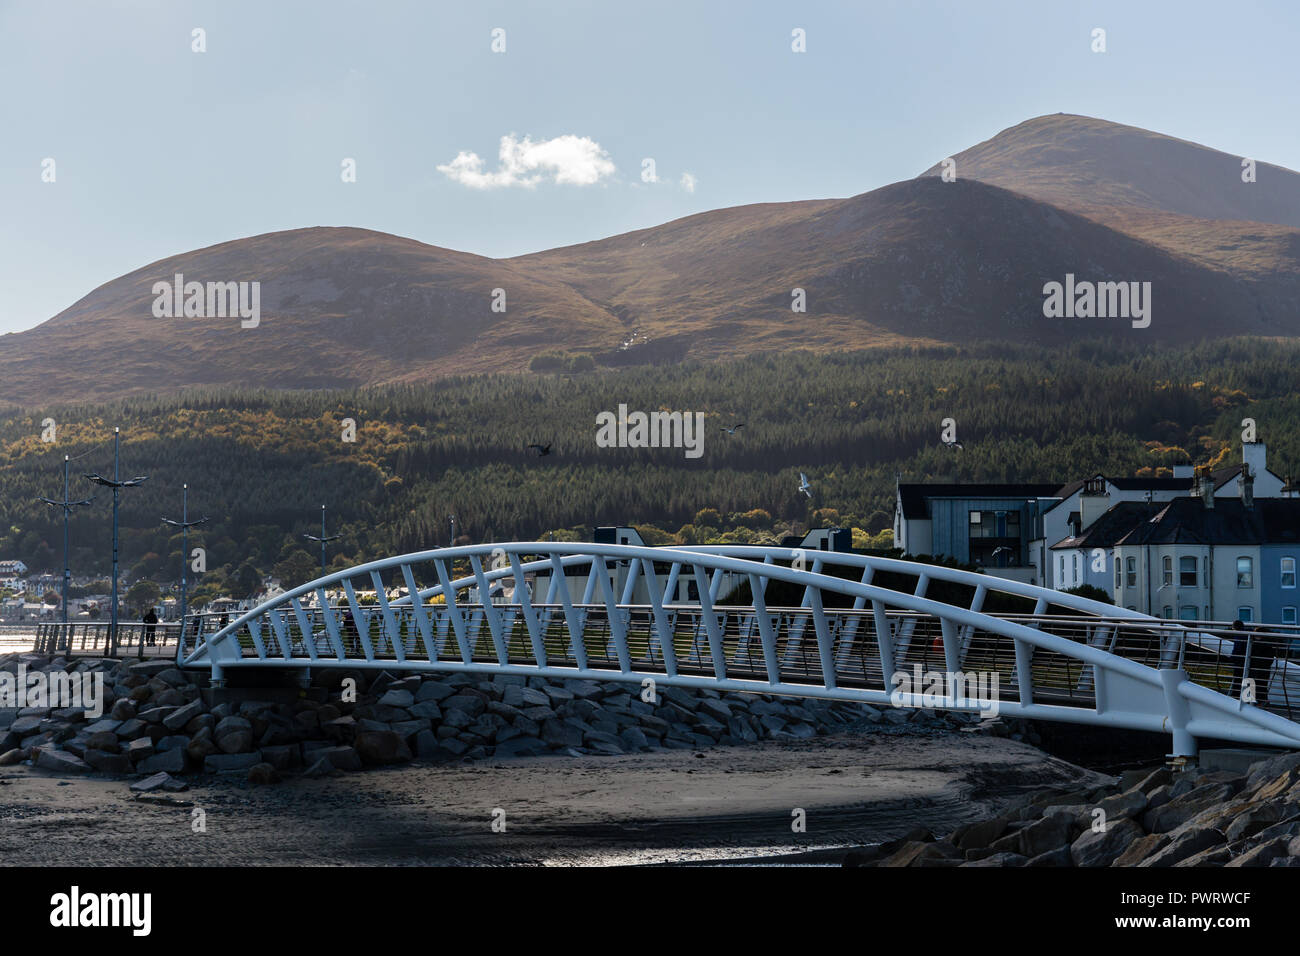 Footbridge over River Shimna connecting promenades with view to Mourne Mountains including Slieve Donard. Newcastle, County Down, N.Ireland. - Stock Image